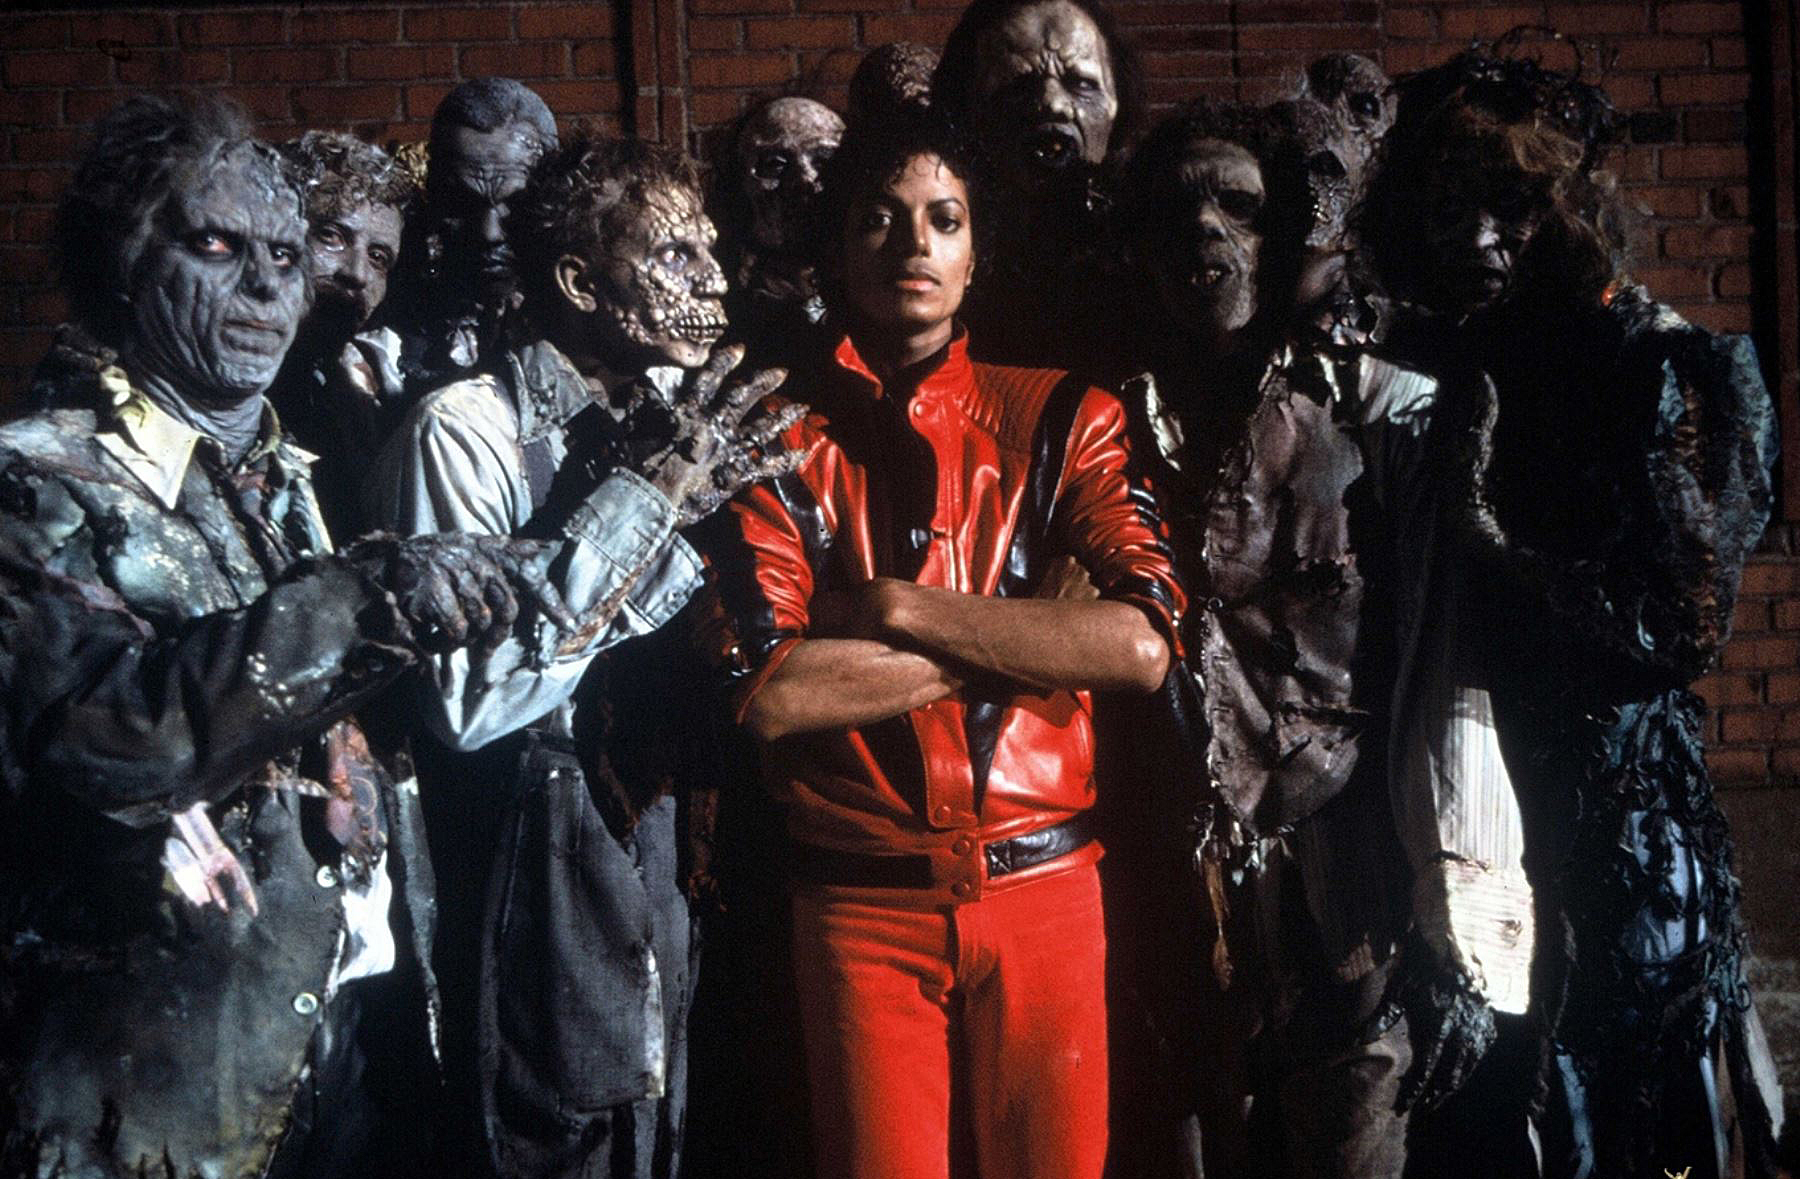 Thriller is the sixth studio album by American singer Michael Jackson released on November 30 1982 in the United States by Epic Records and internationally by CBS